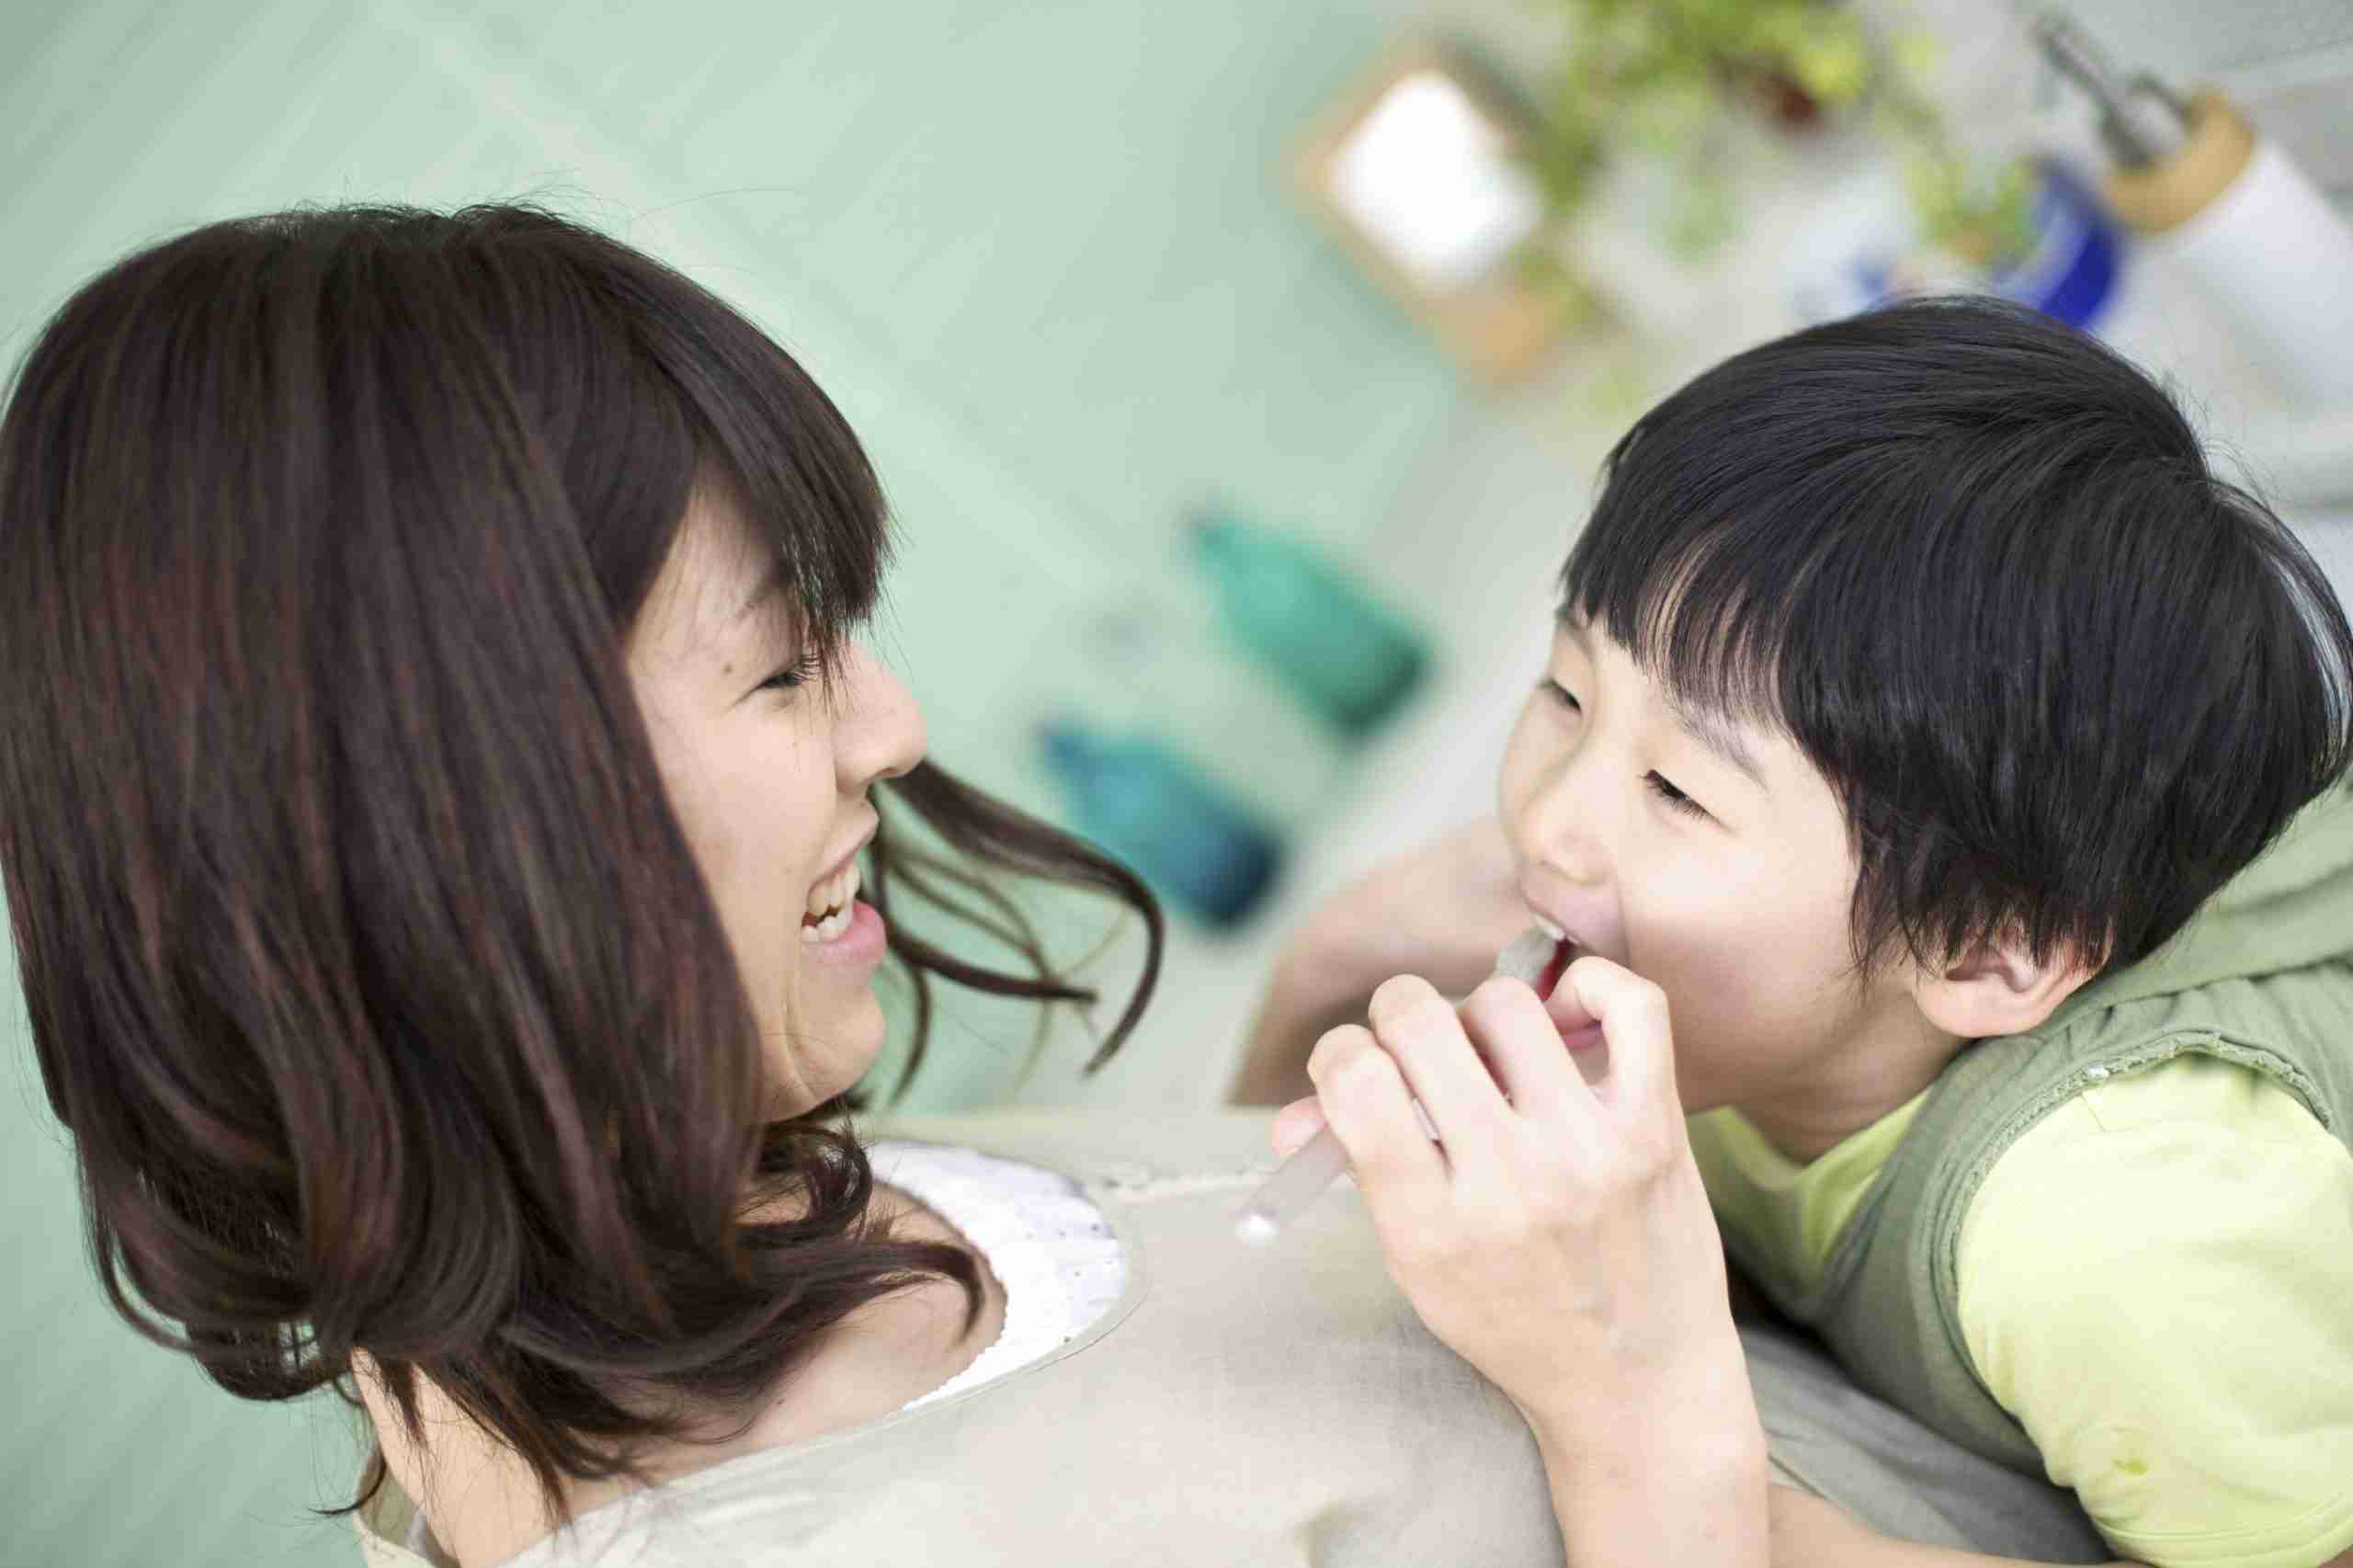 mother playing dentist with child